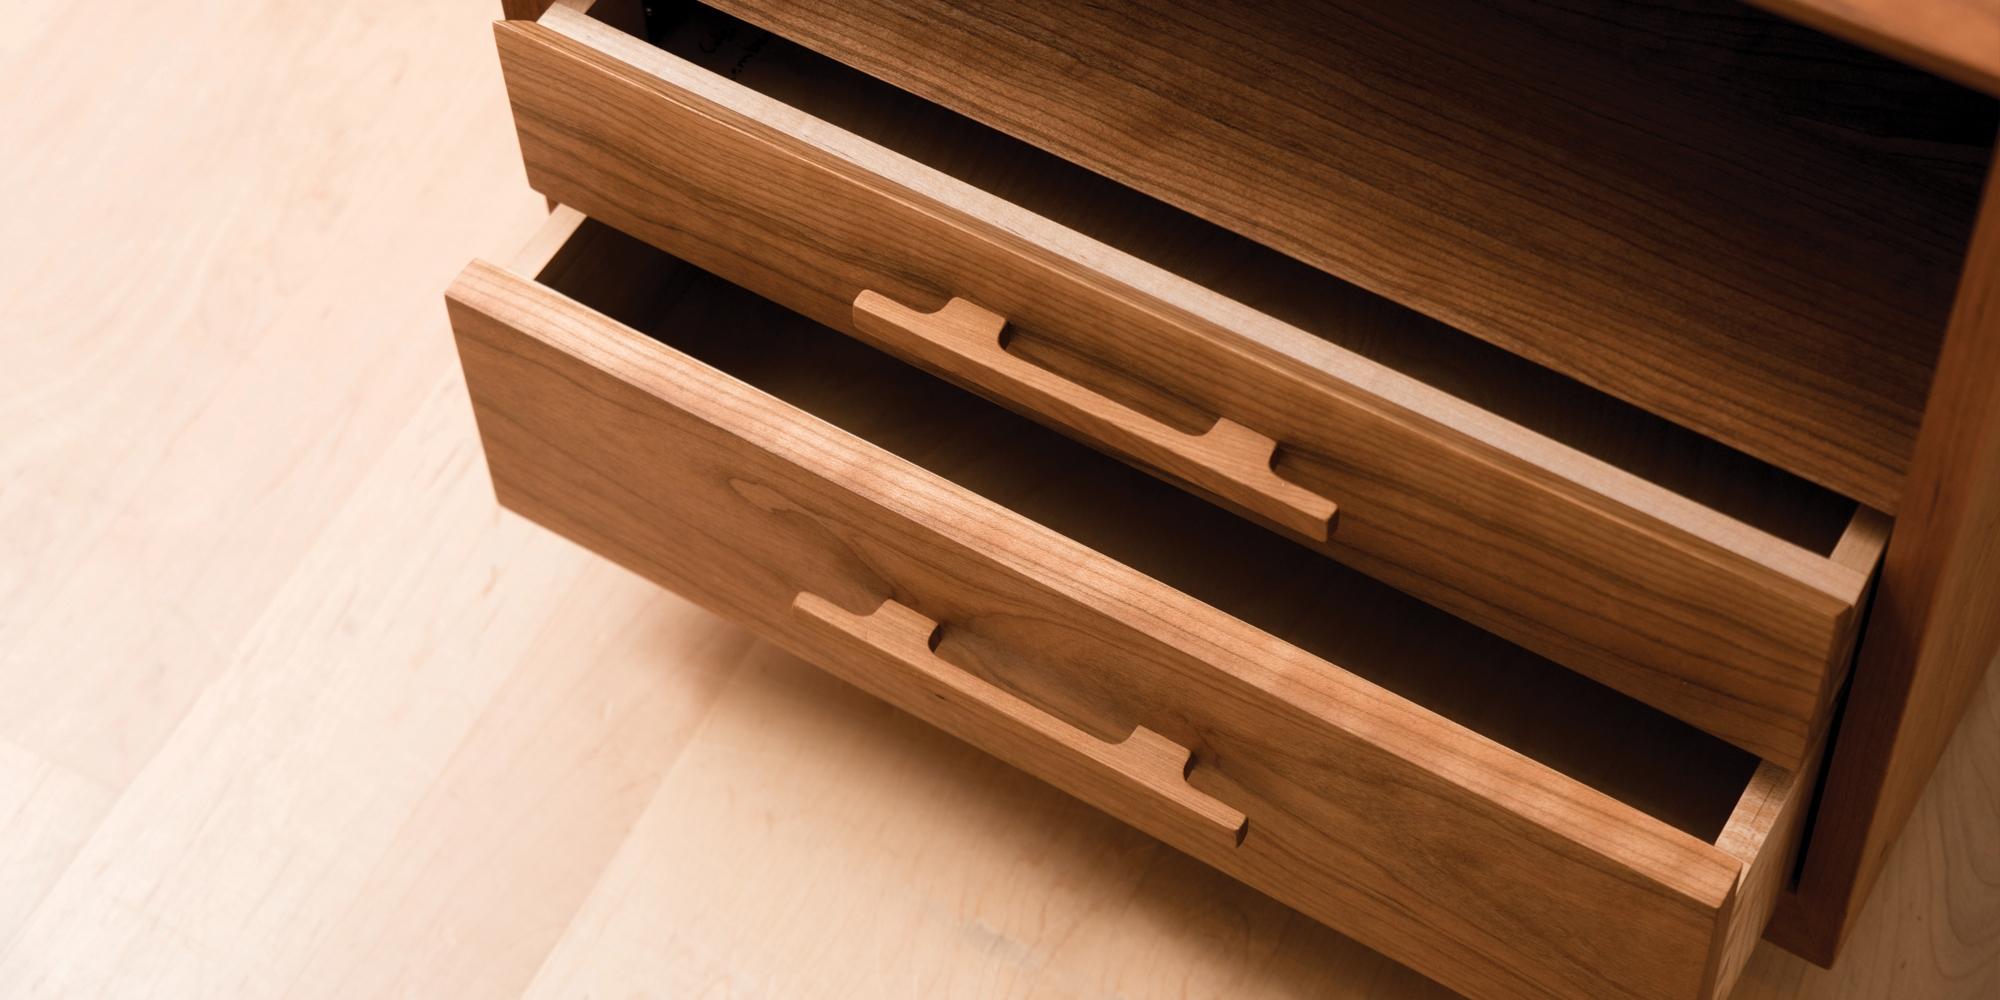 Modern Nightstand Detail In Cherry Handcrafted By The Joinery